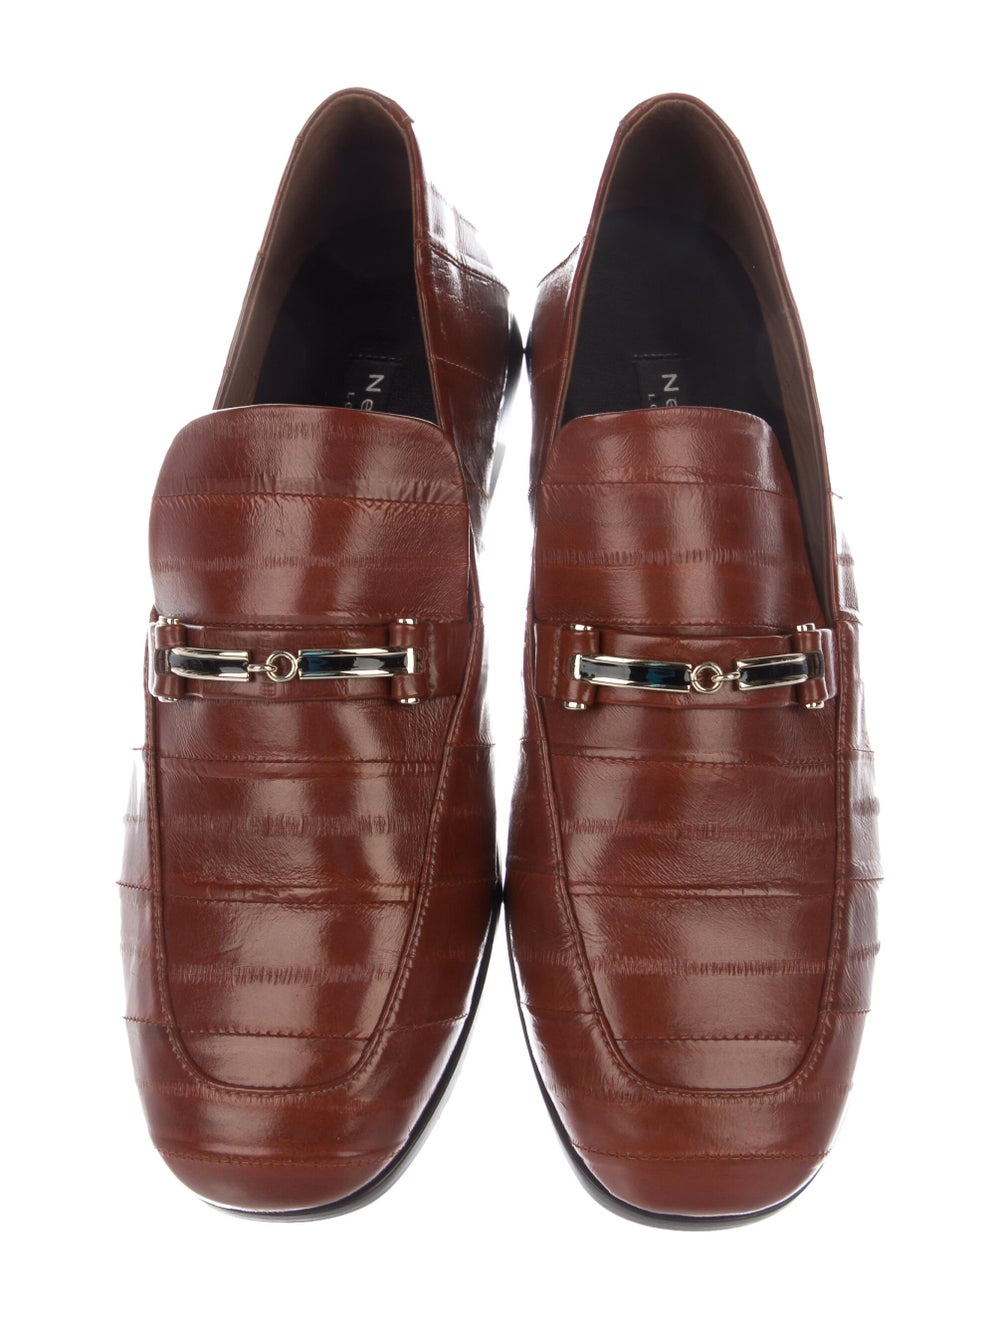 NewbarK Eel Skin Loafers Brown - image 3